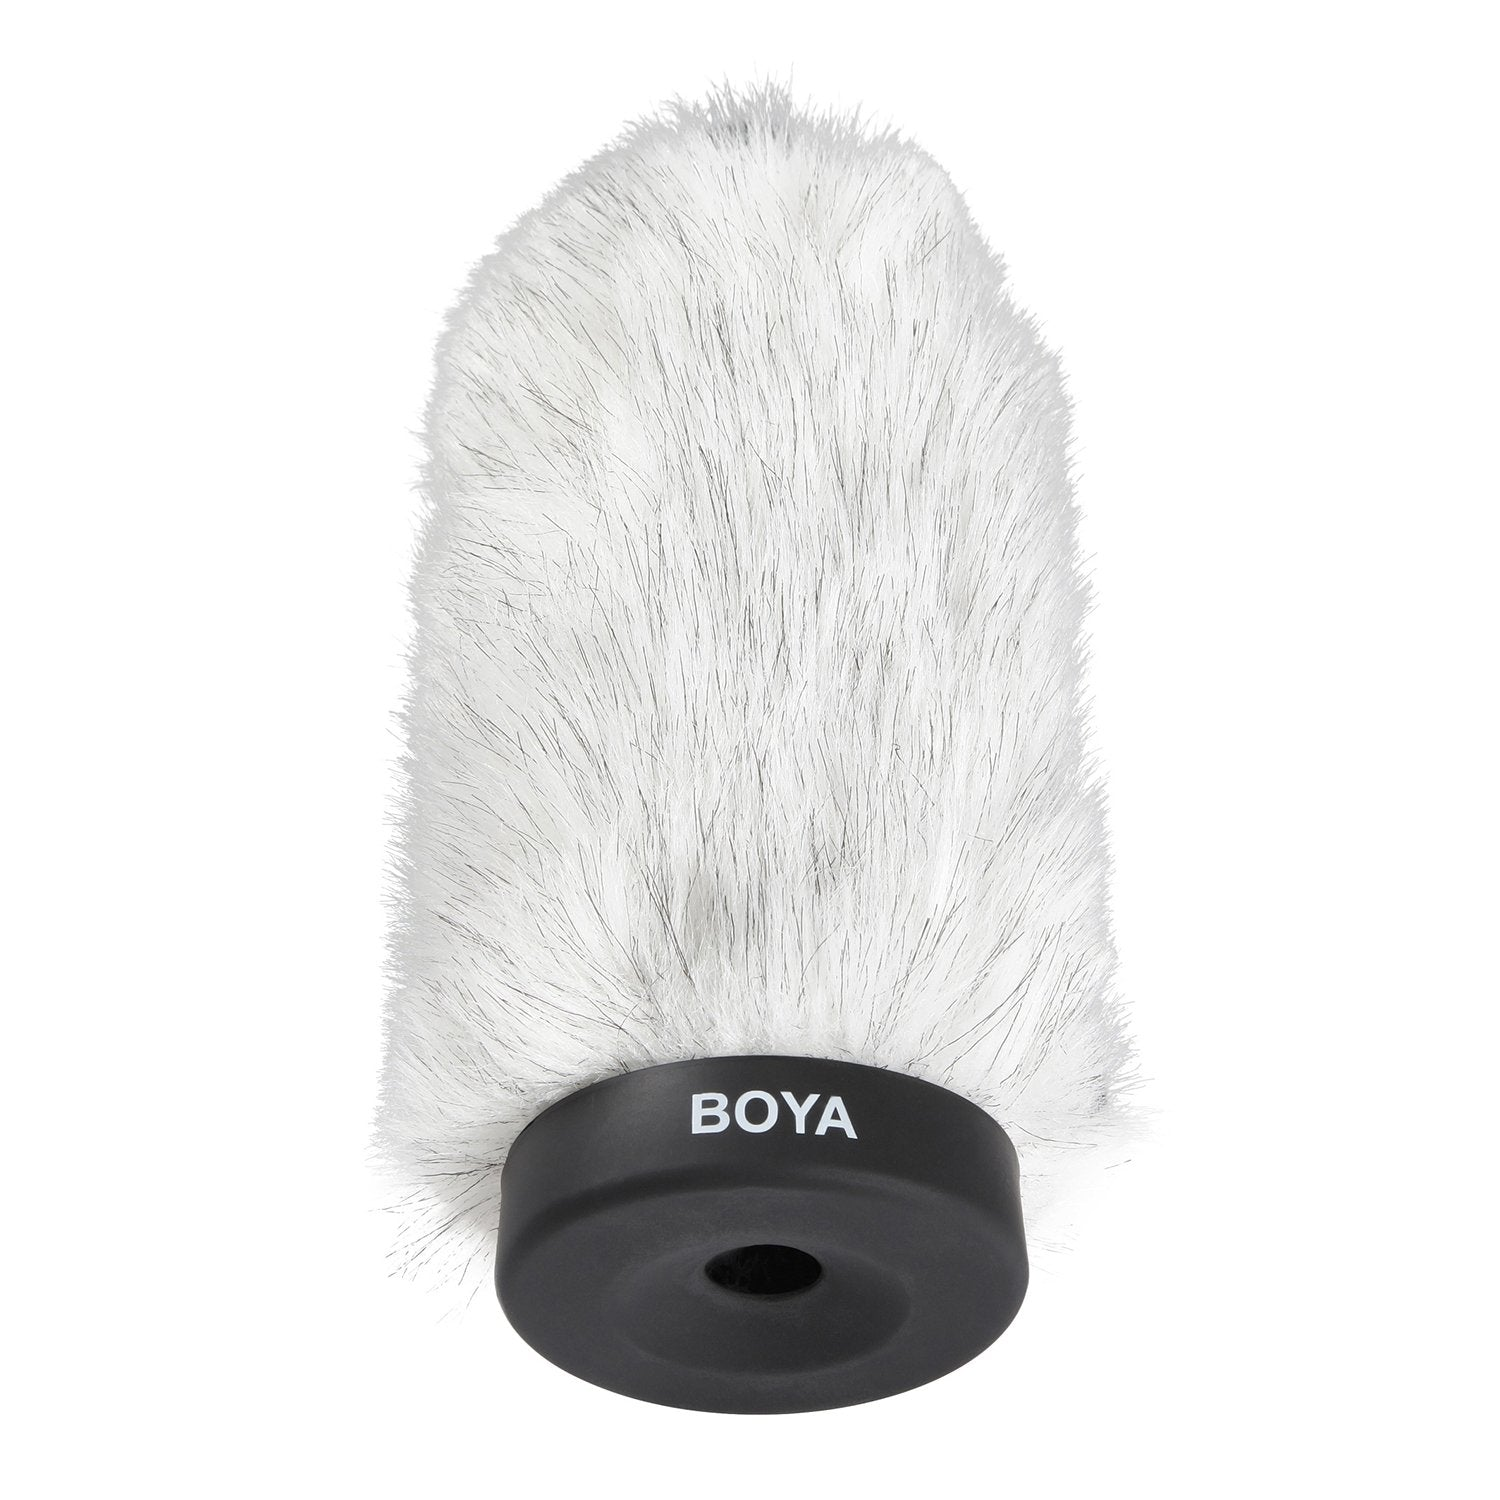 BOYA BY-P160 Furry Outdoor Interview Windshield Muff for Shotgun Capacitor Microphones (Inside Depth 6.4)